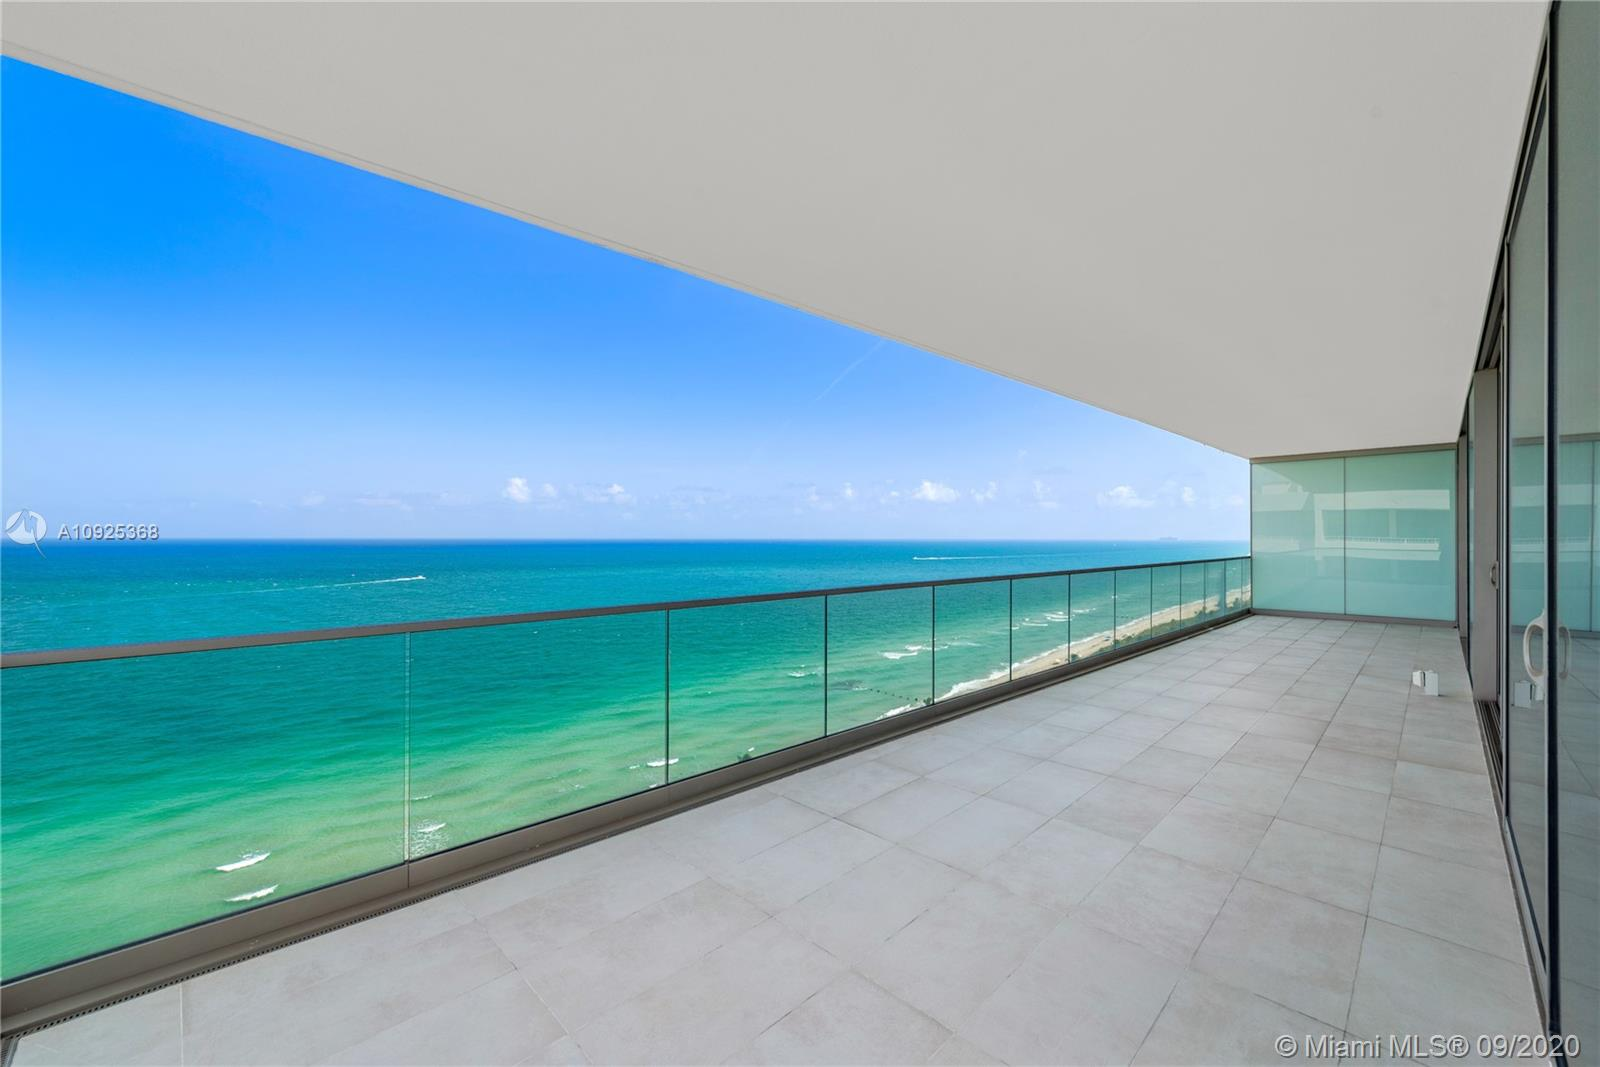 10203 Collins Ave, Unit #1701 Luxury Real Estate